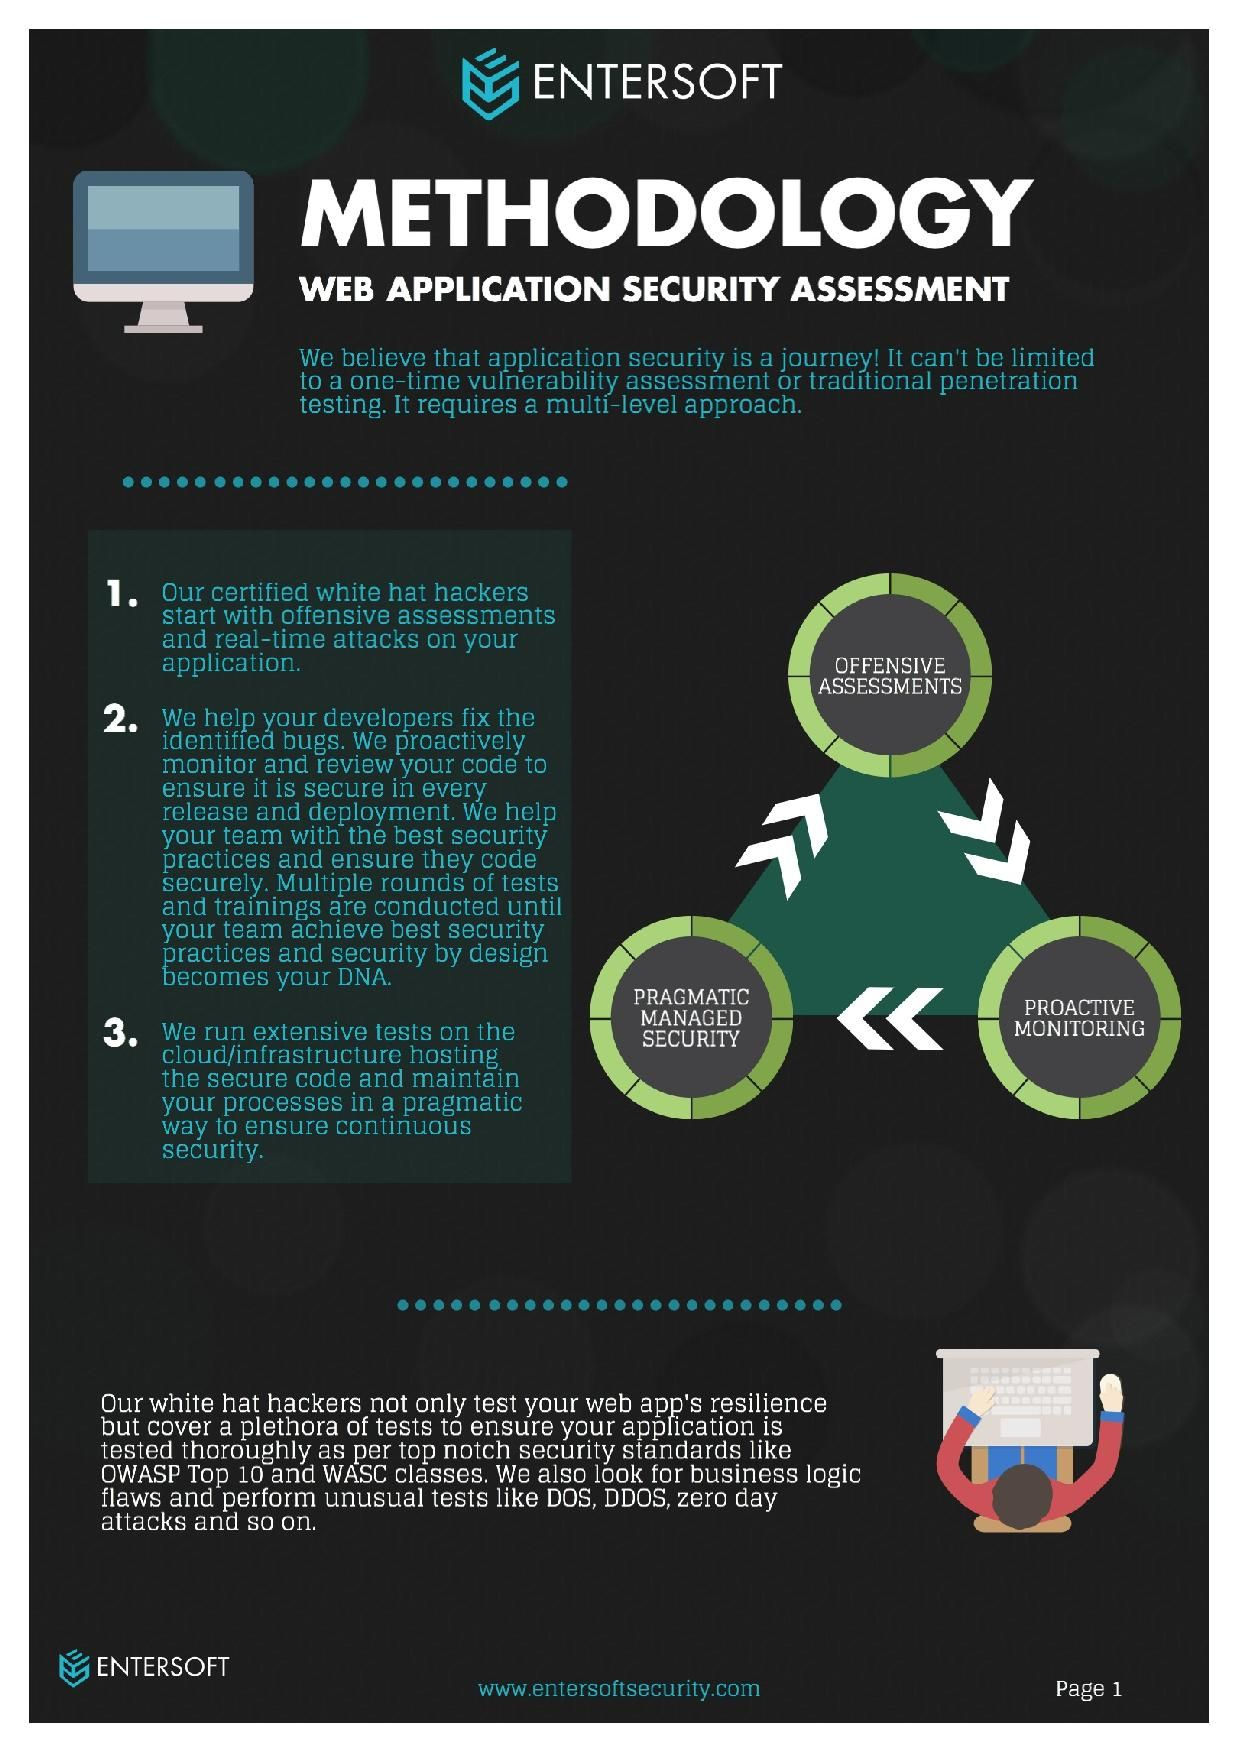 Best methodology by entersoft for web app security testing